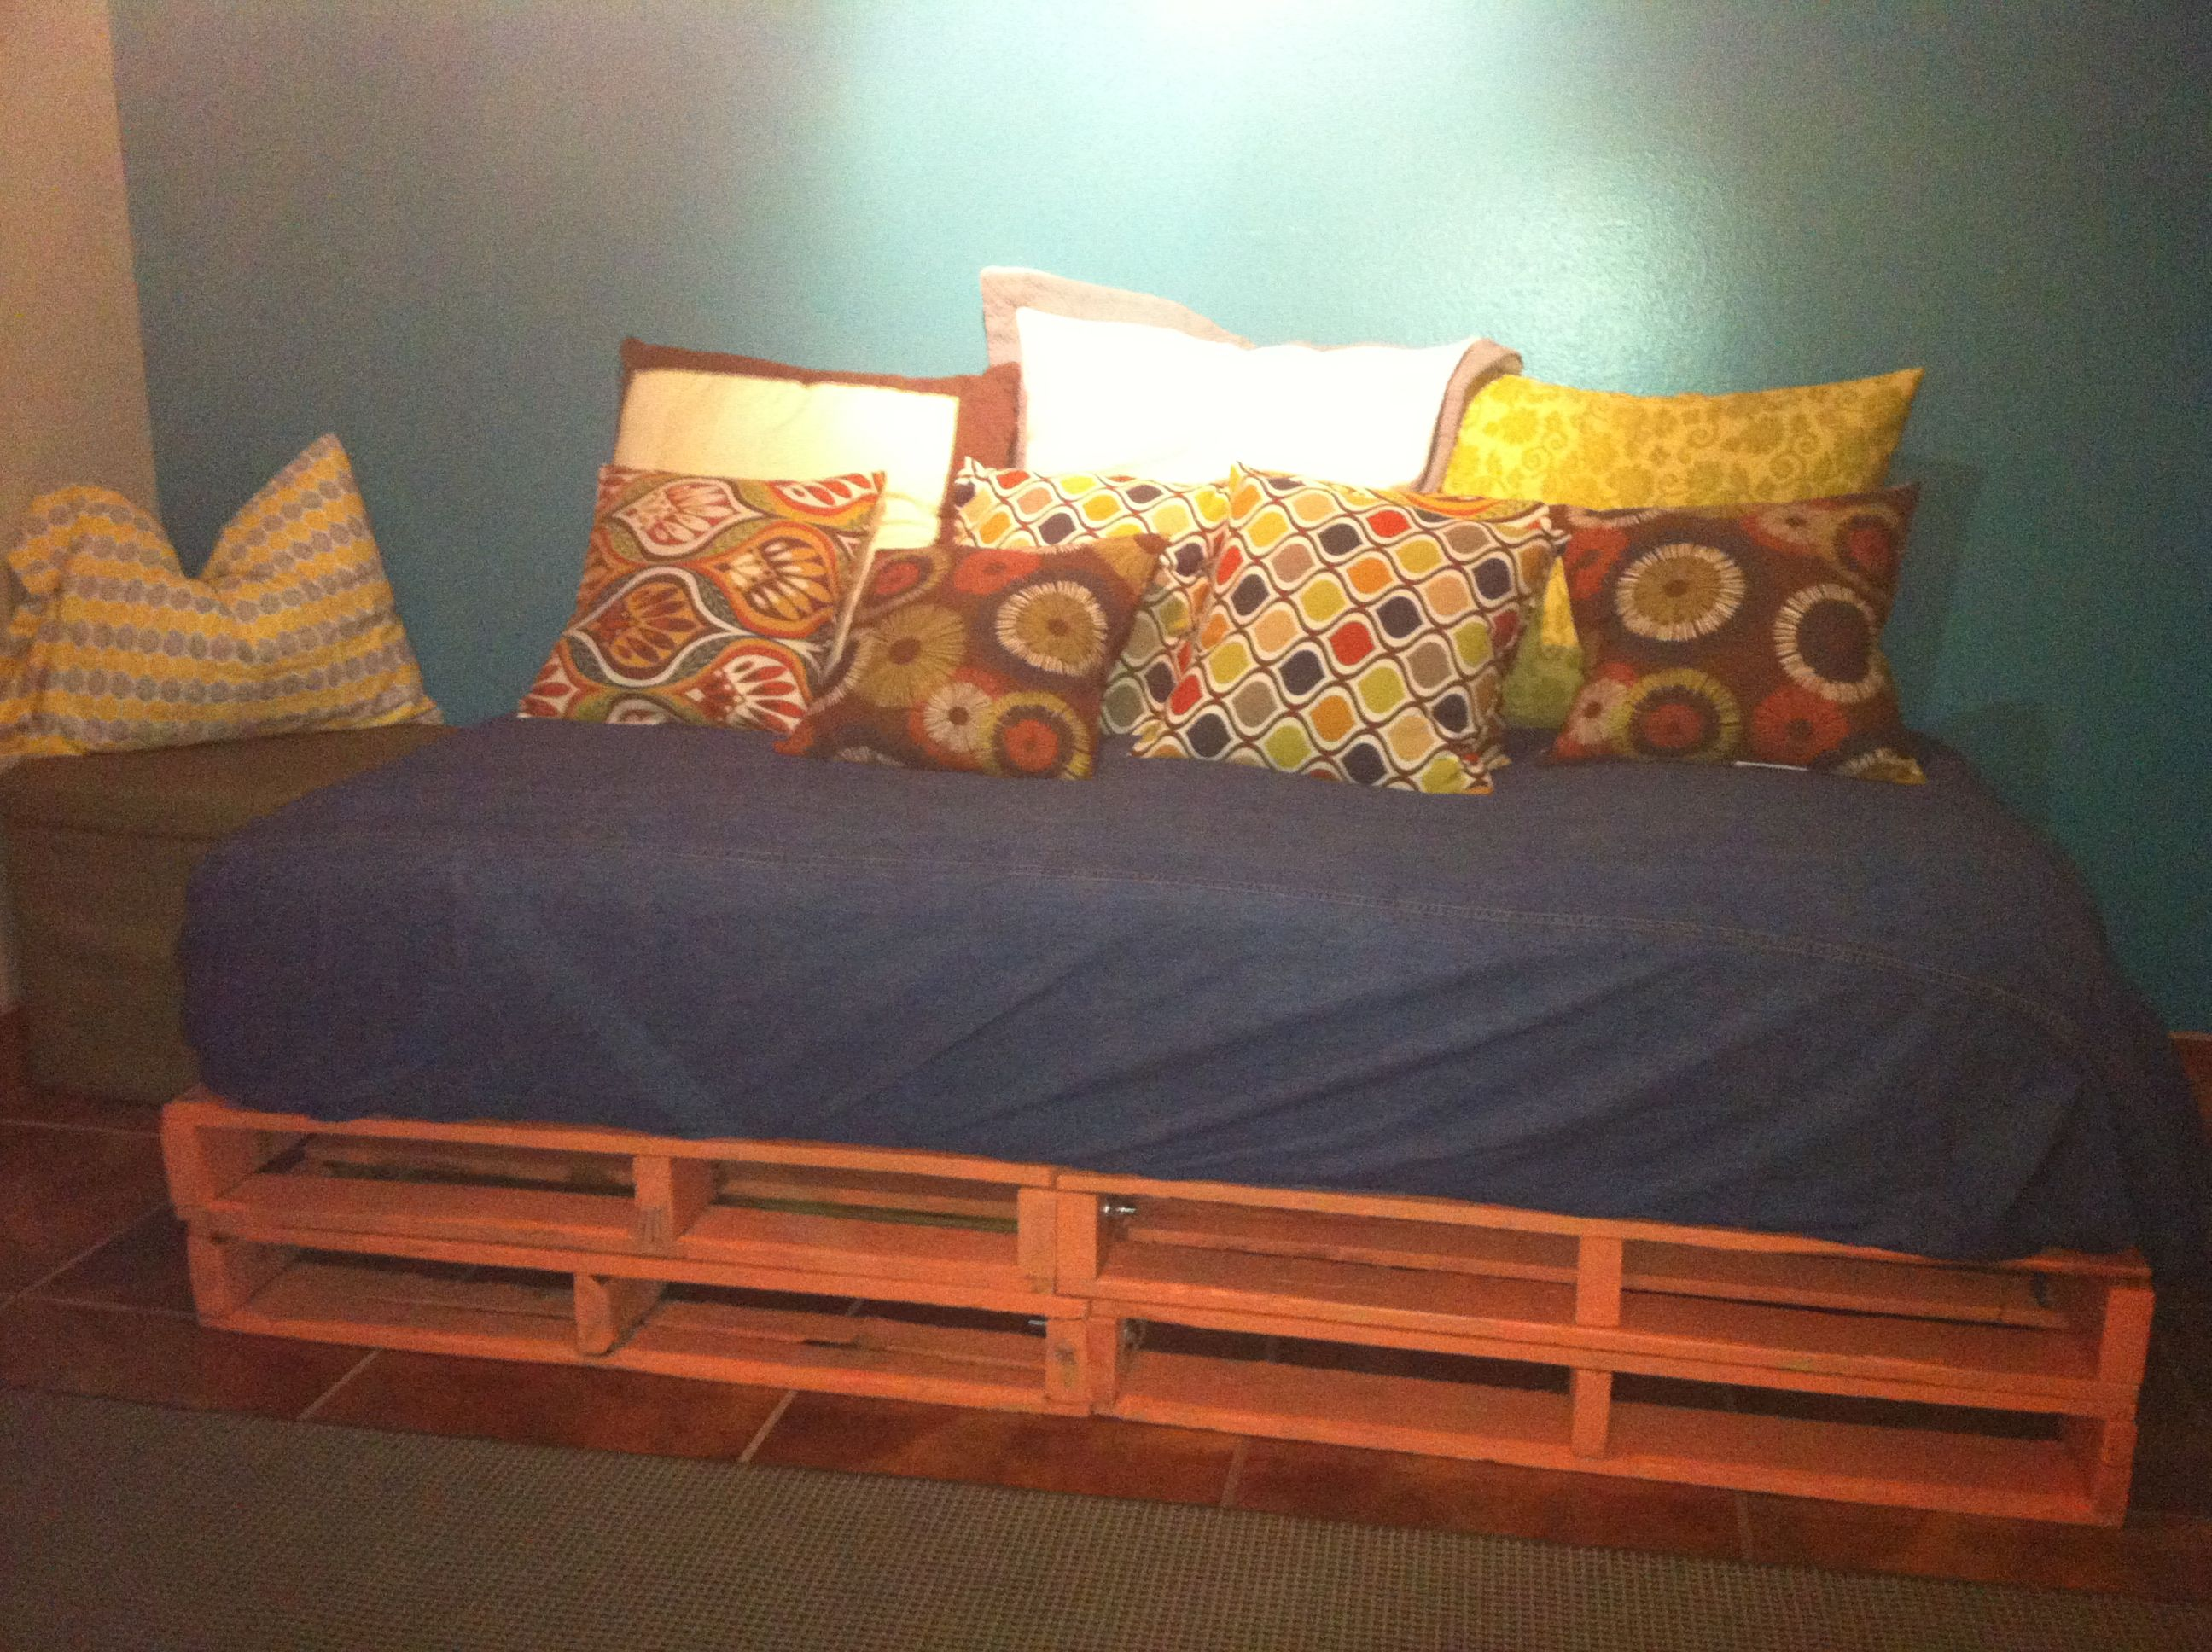 Pallet Bed Sofa Made With 4 Pallets Bolted Together Painted Them